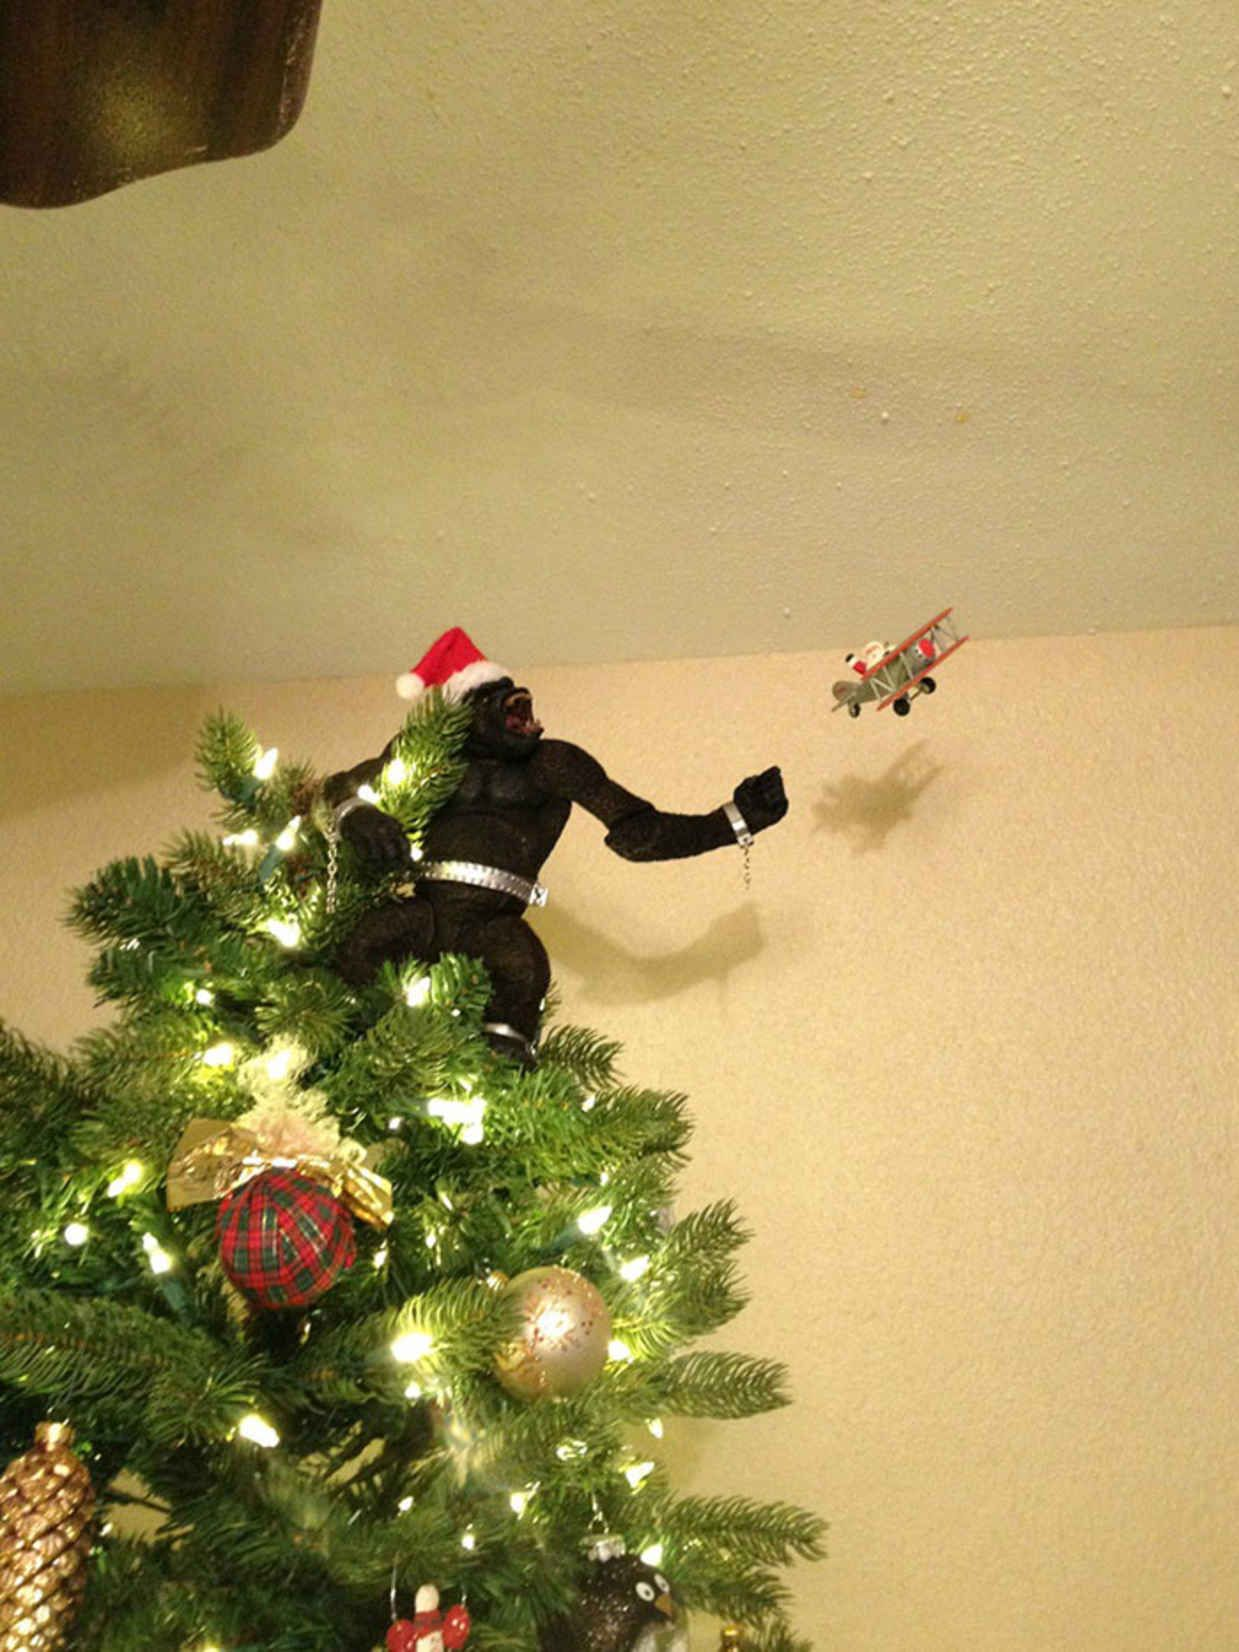 18 Brilliant Christmas Tree Topper Alternatives for When a Star Won